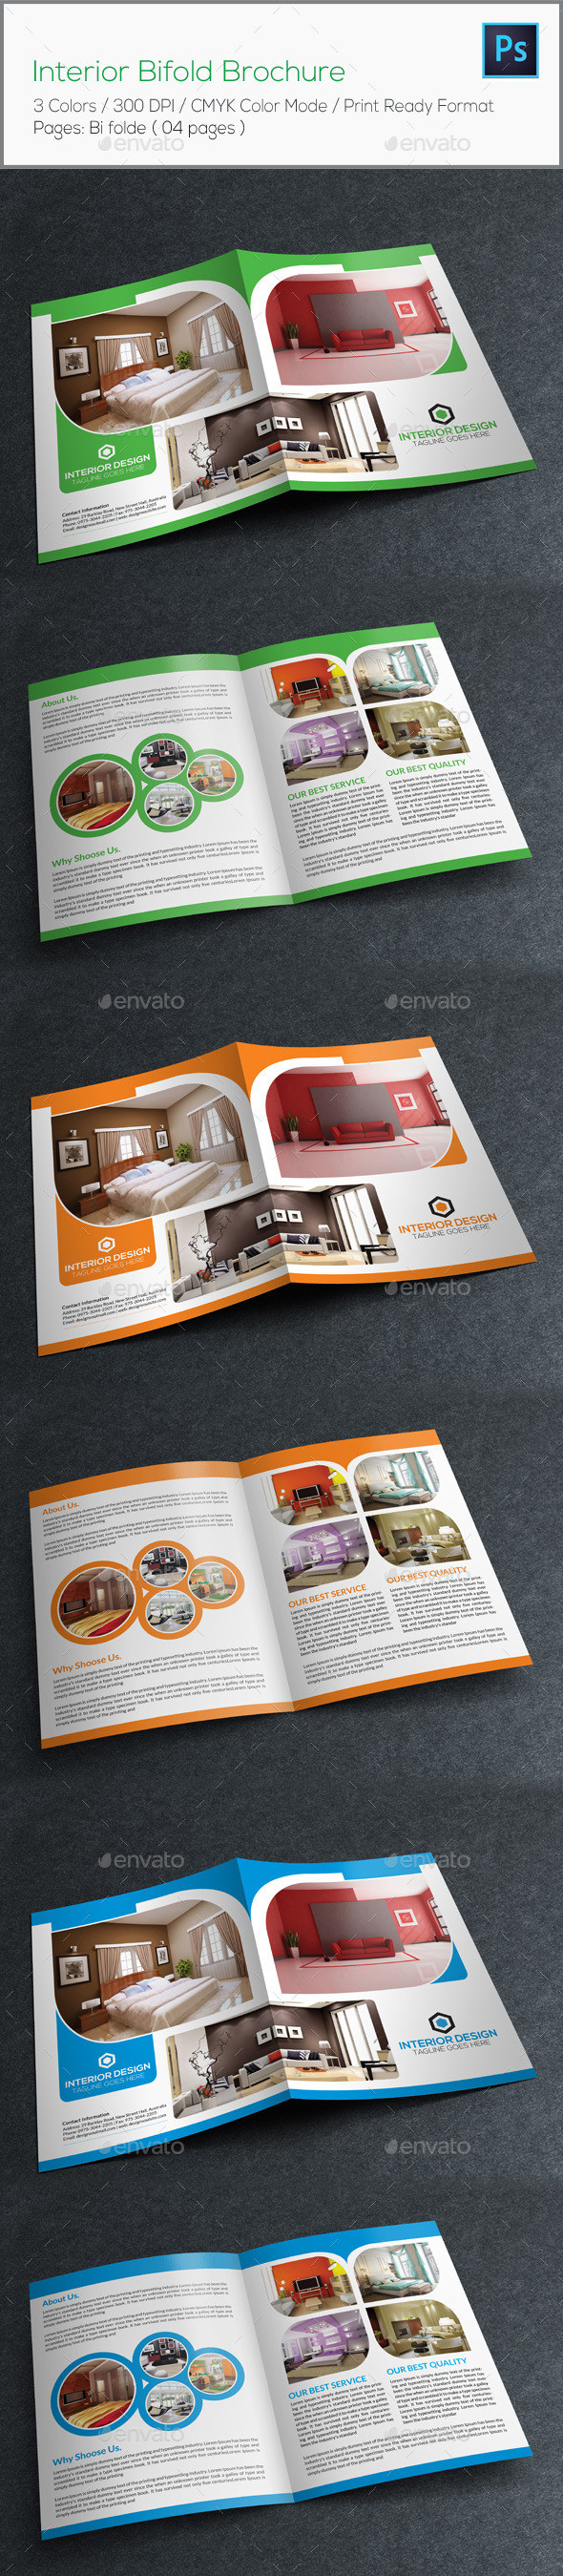 Interior bifold brochure preview